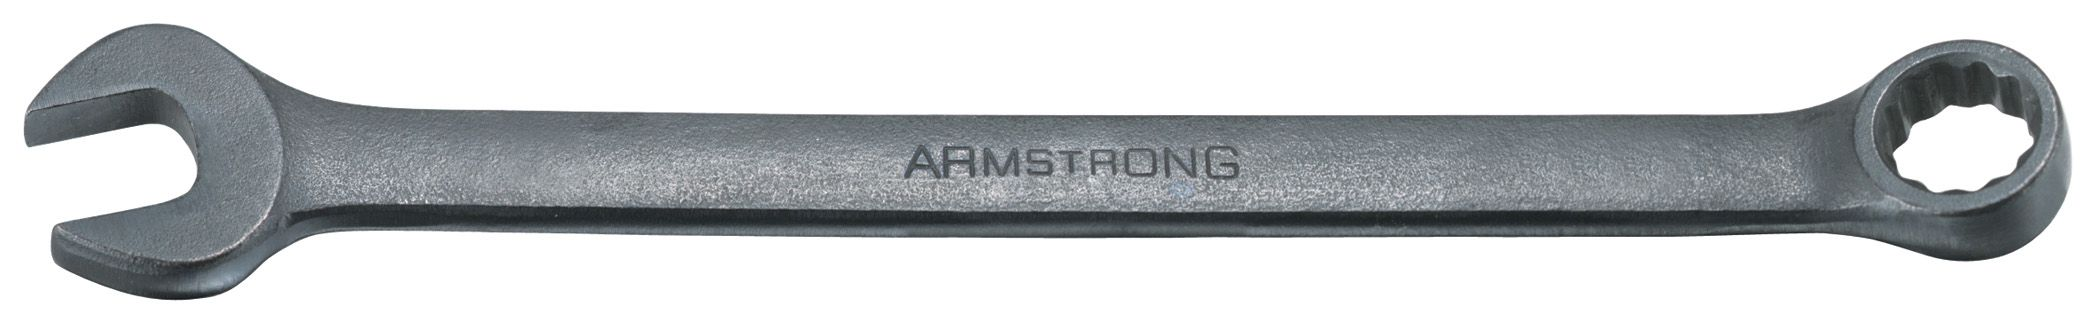 Armstrong 2 in. 12 pt. Black Oxide Long Combination Wrench